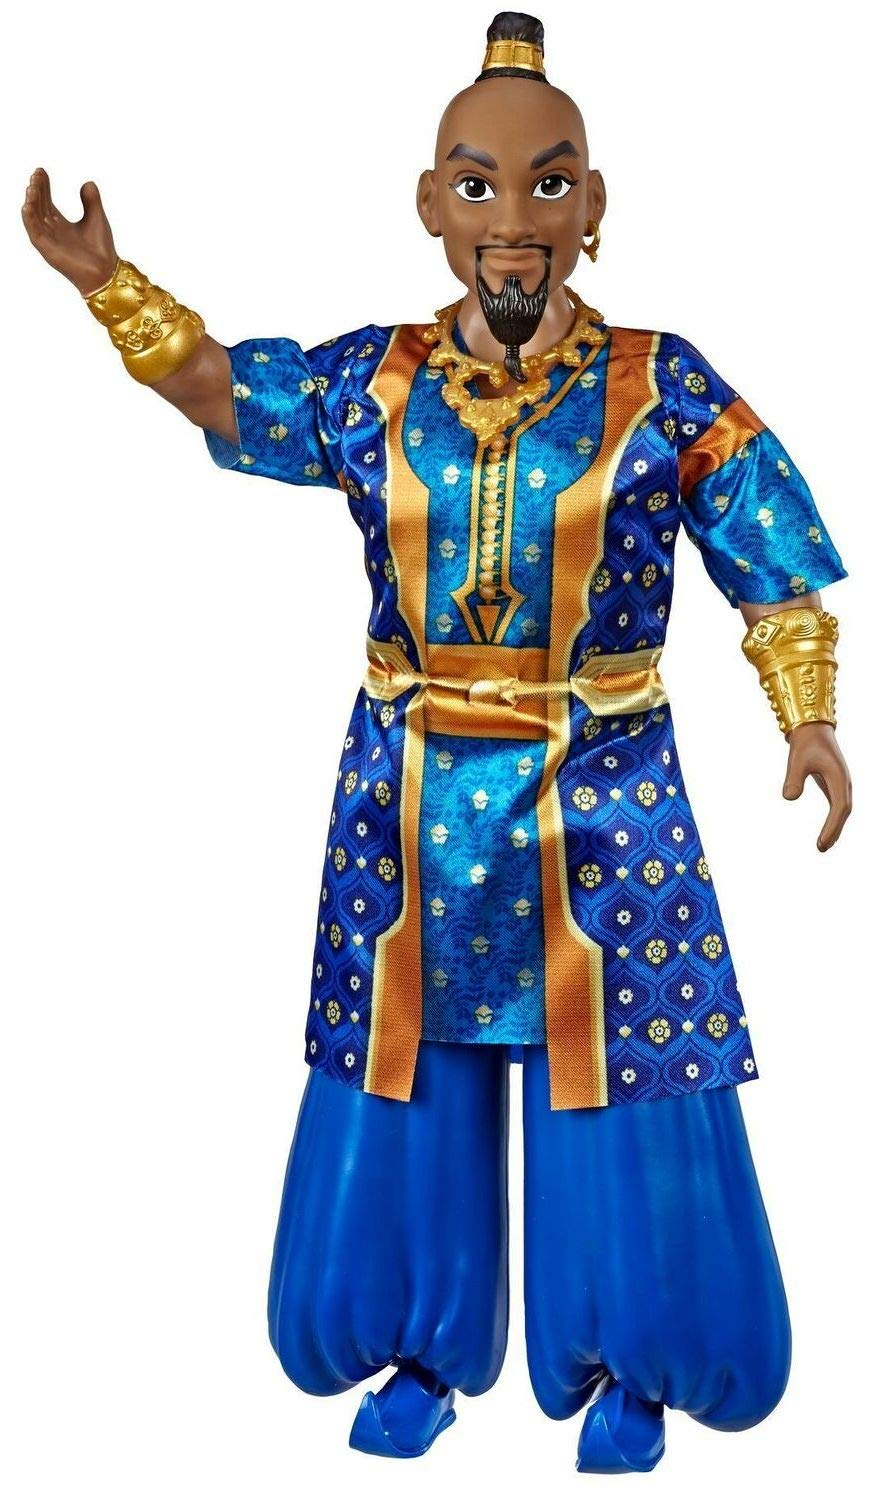 LIVE New Action Genie (Human Form), Approx 12'' - Collect Them All! by LIVE (Image #2)